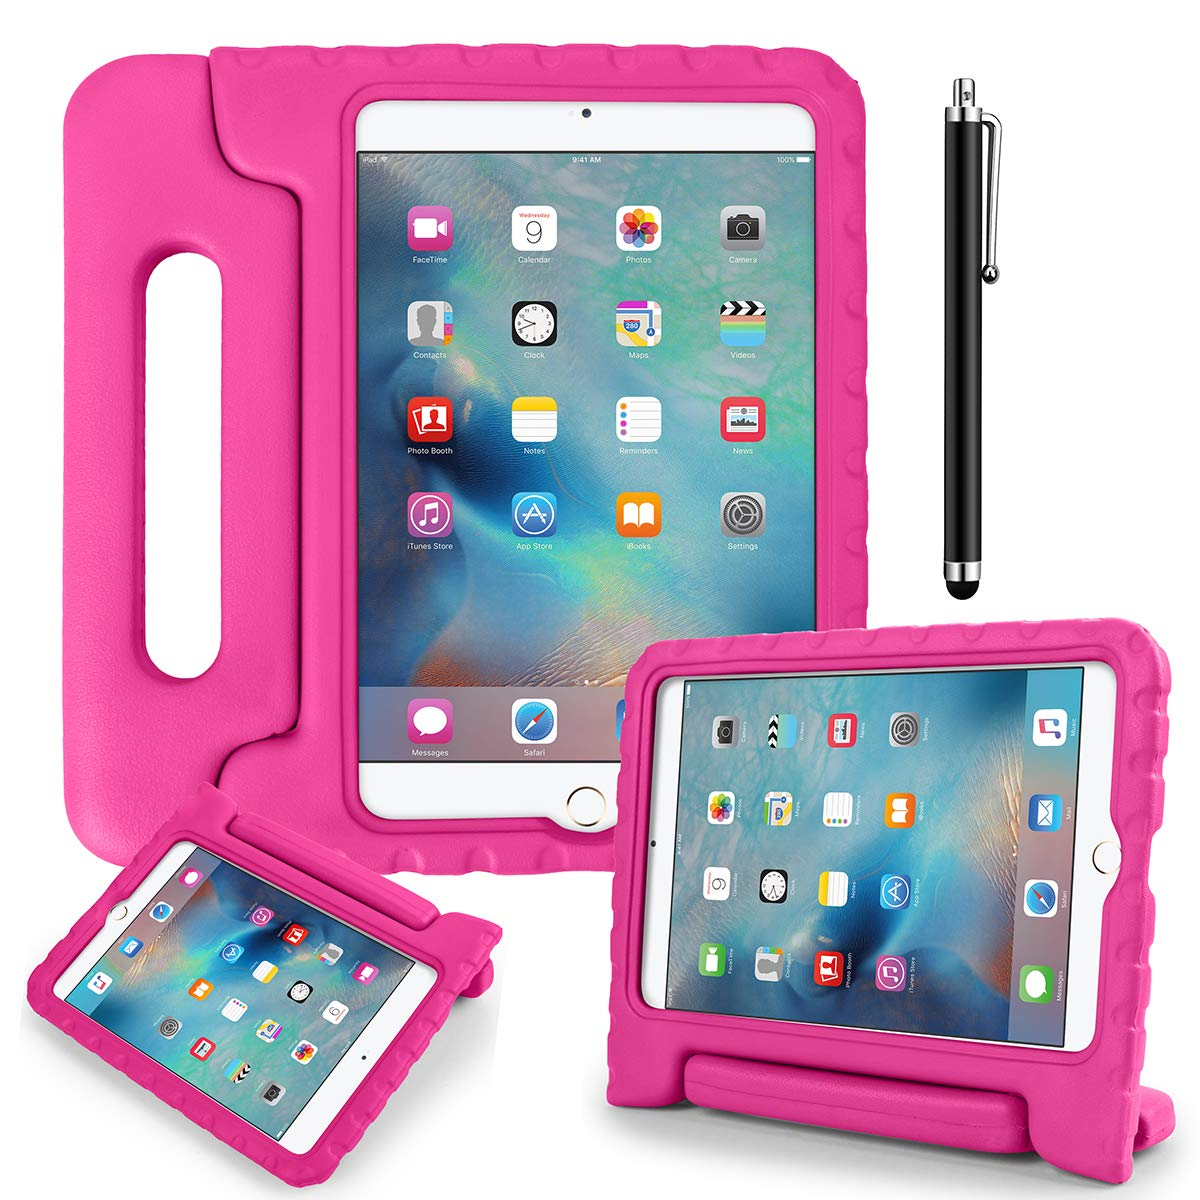 iPad Mini 1/2/3 Kids Shockproof Bumper Hard Case with Handle Stand and Screen Protector